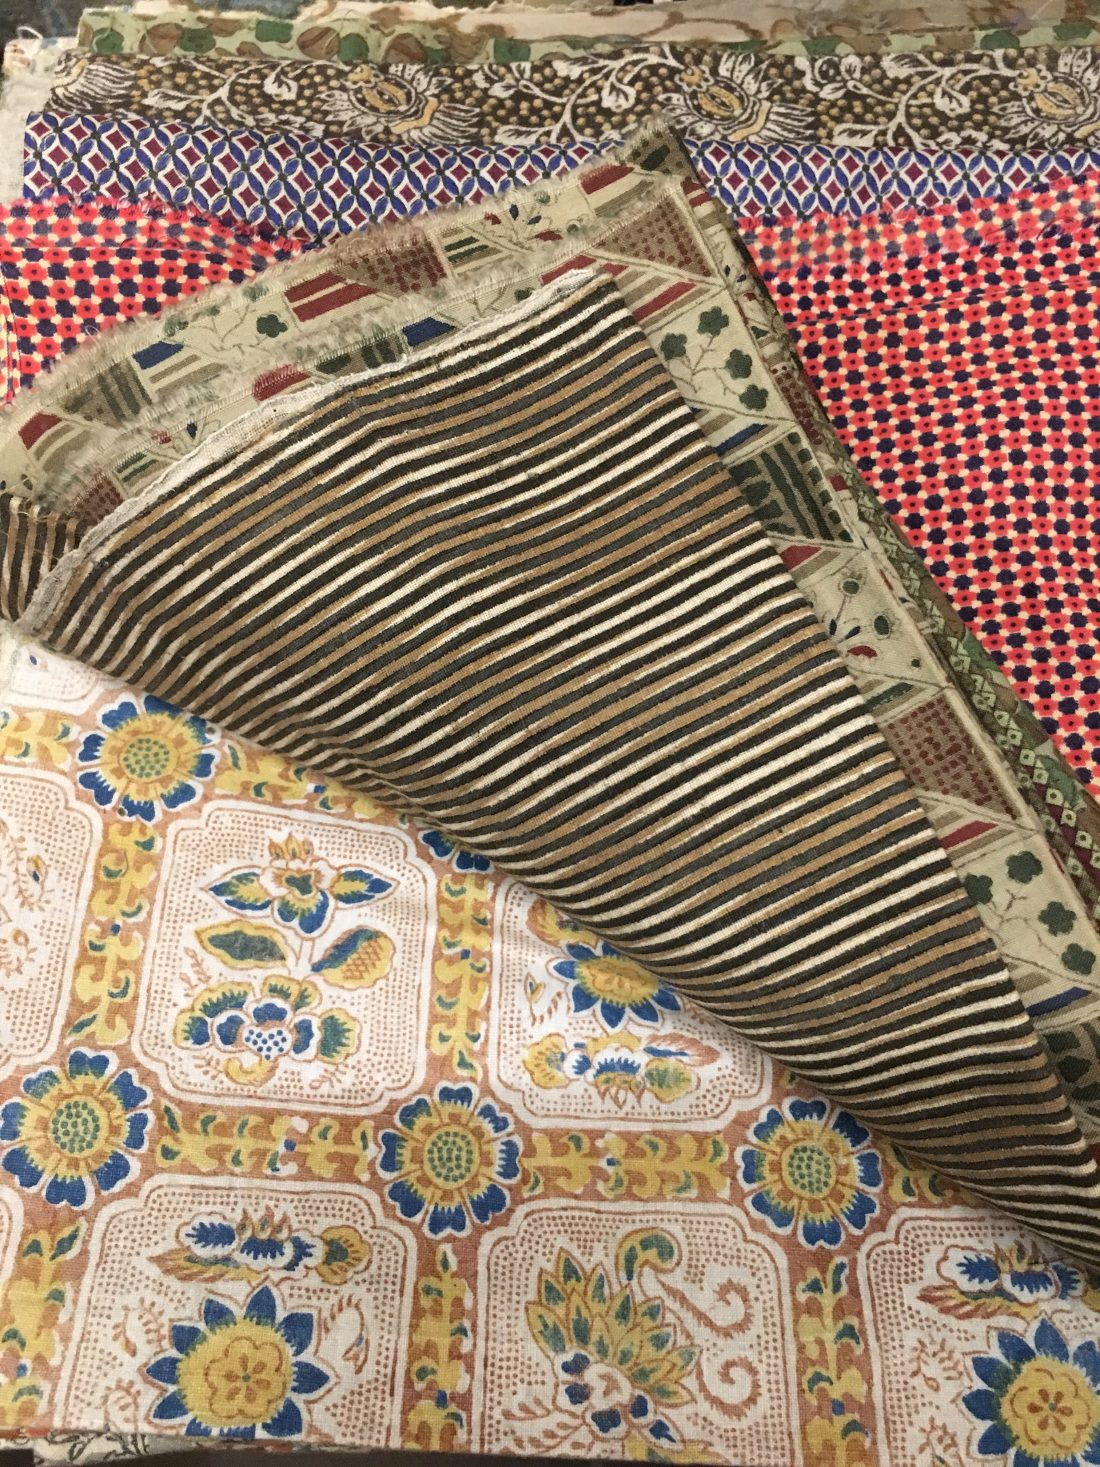 Shopping For Antique Textiles In Kyoto-6